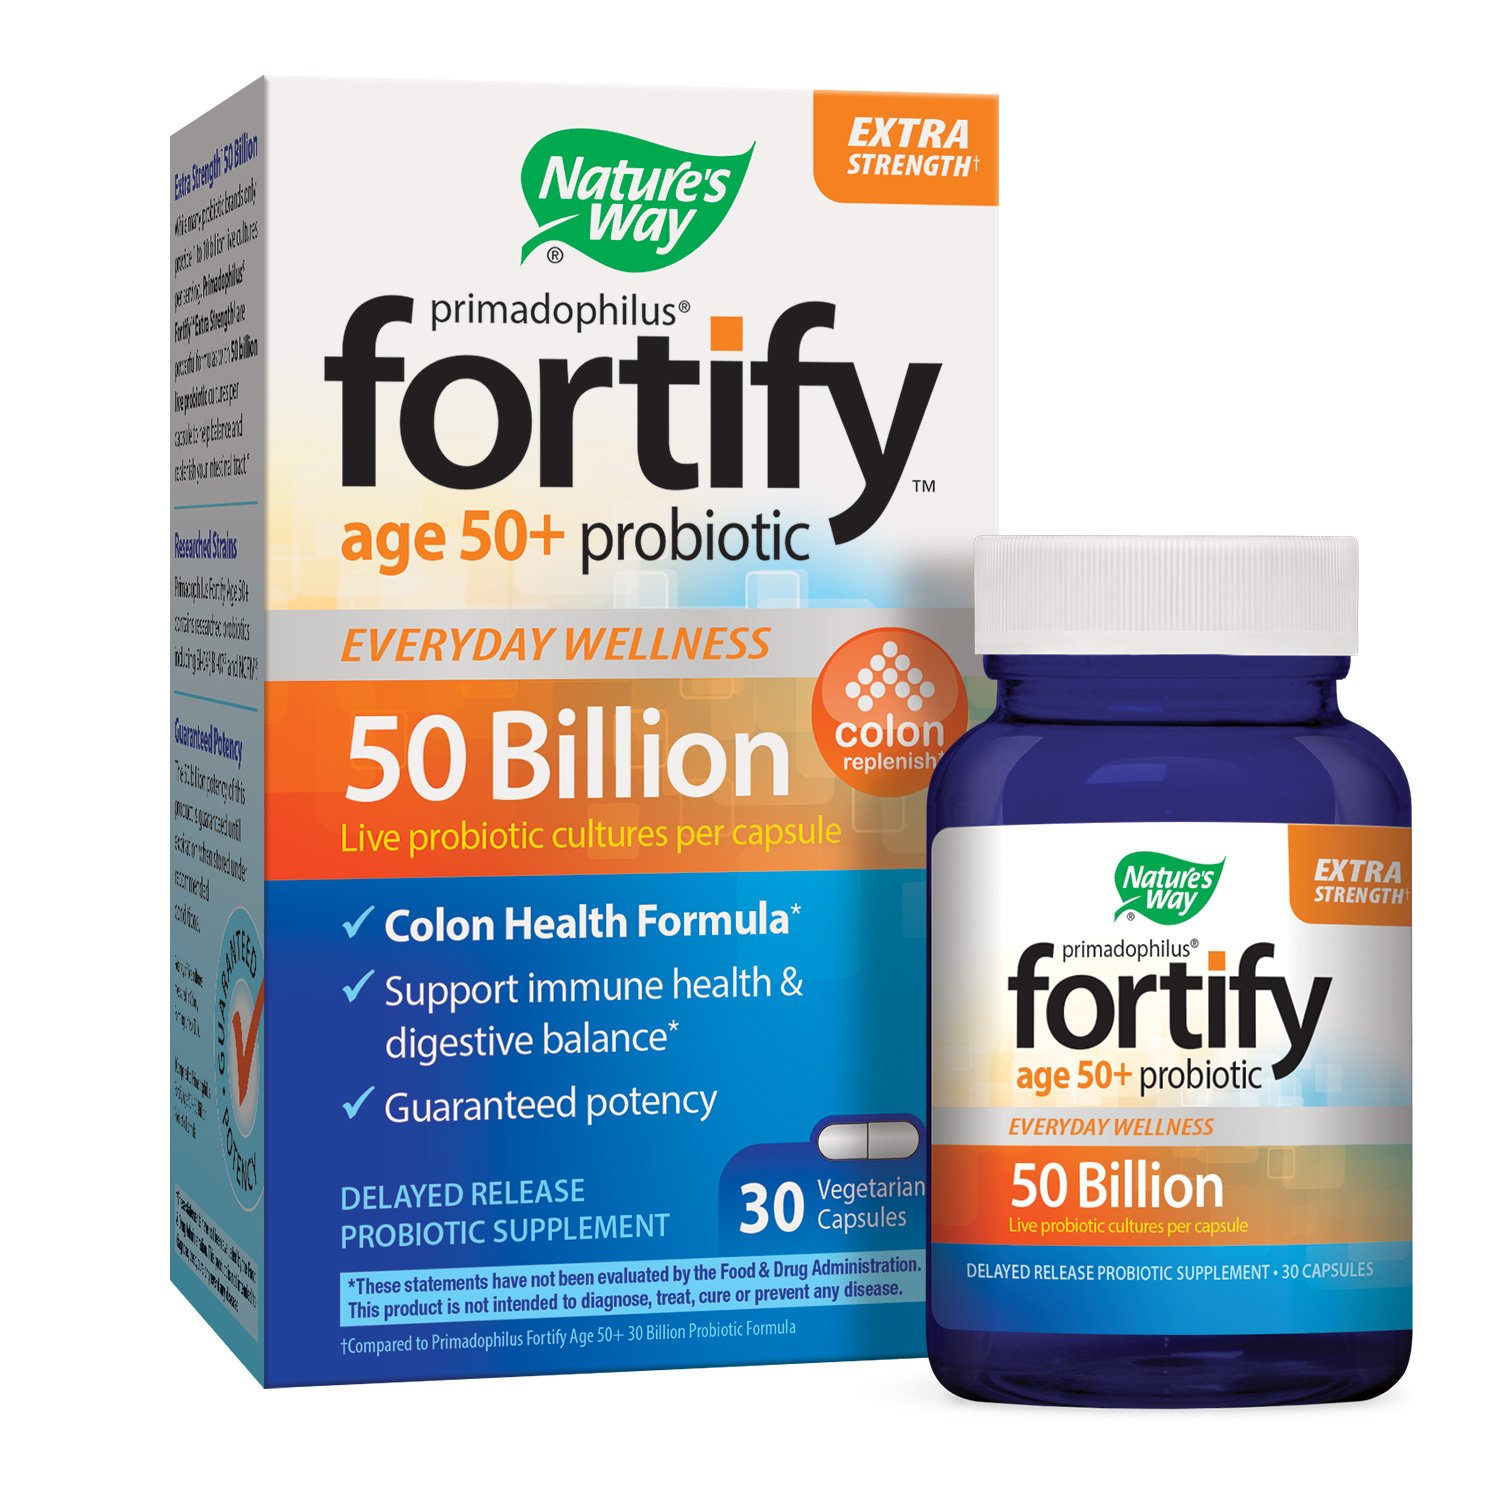 Natures Way Primadophilus Fortify Age 50+ Extra Strength Probiotic, Colon Health Formula, 50